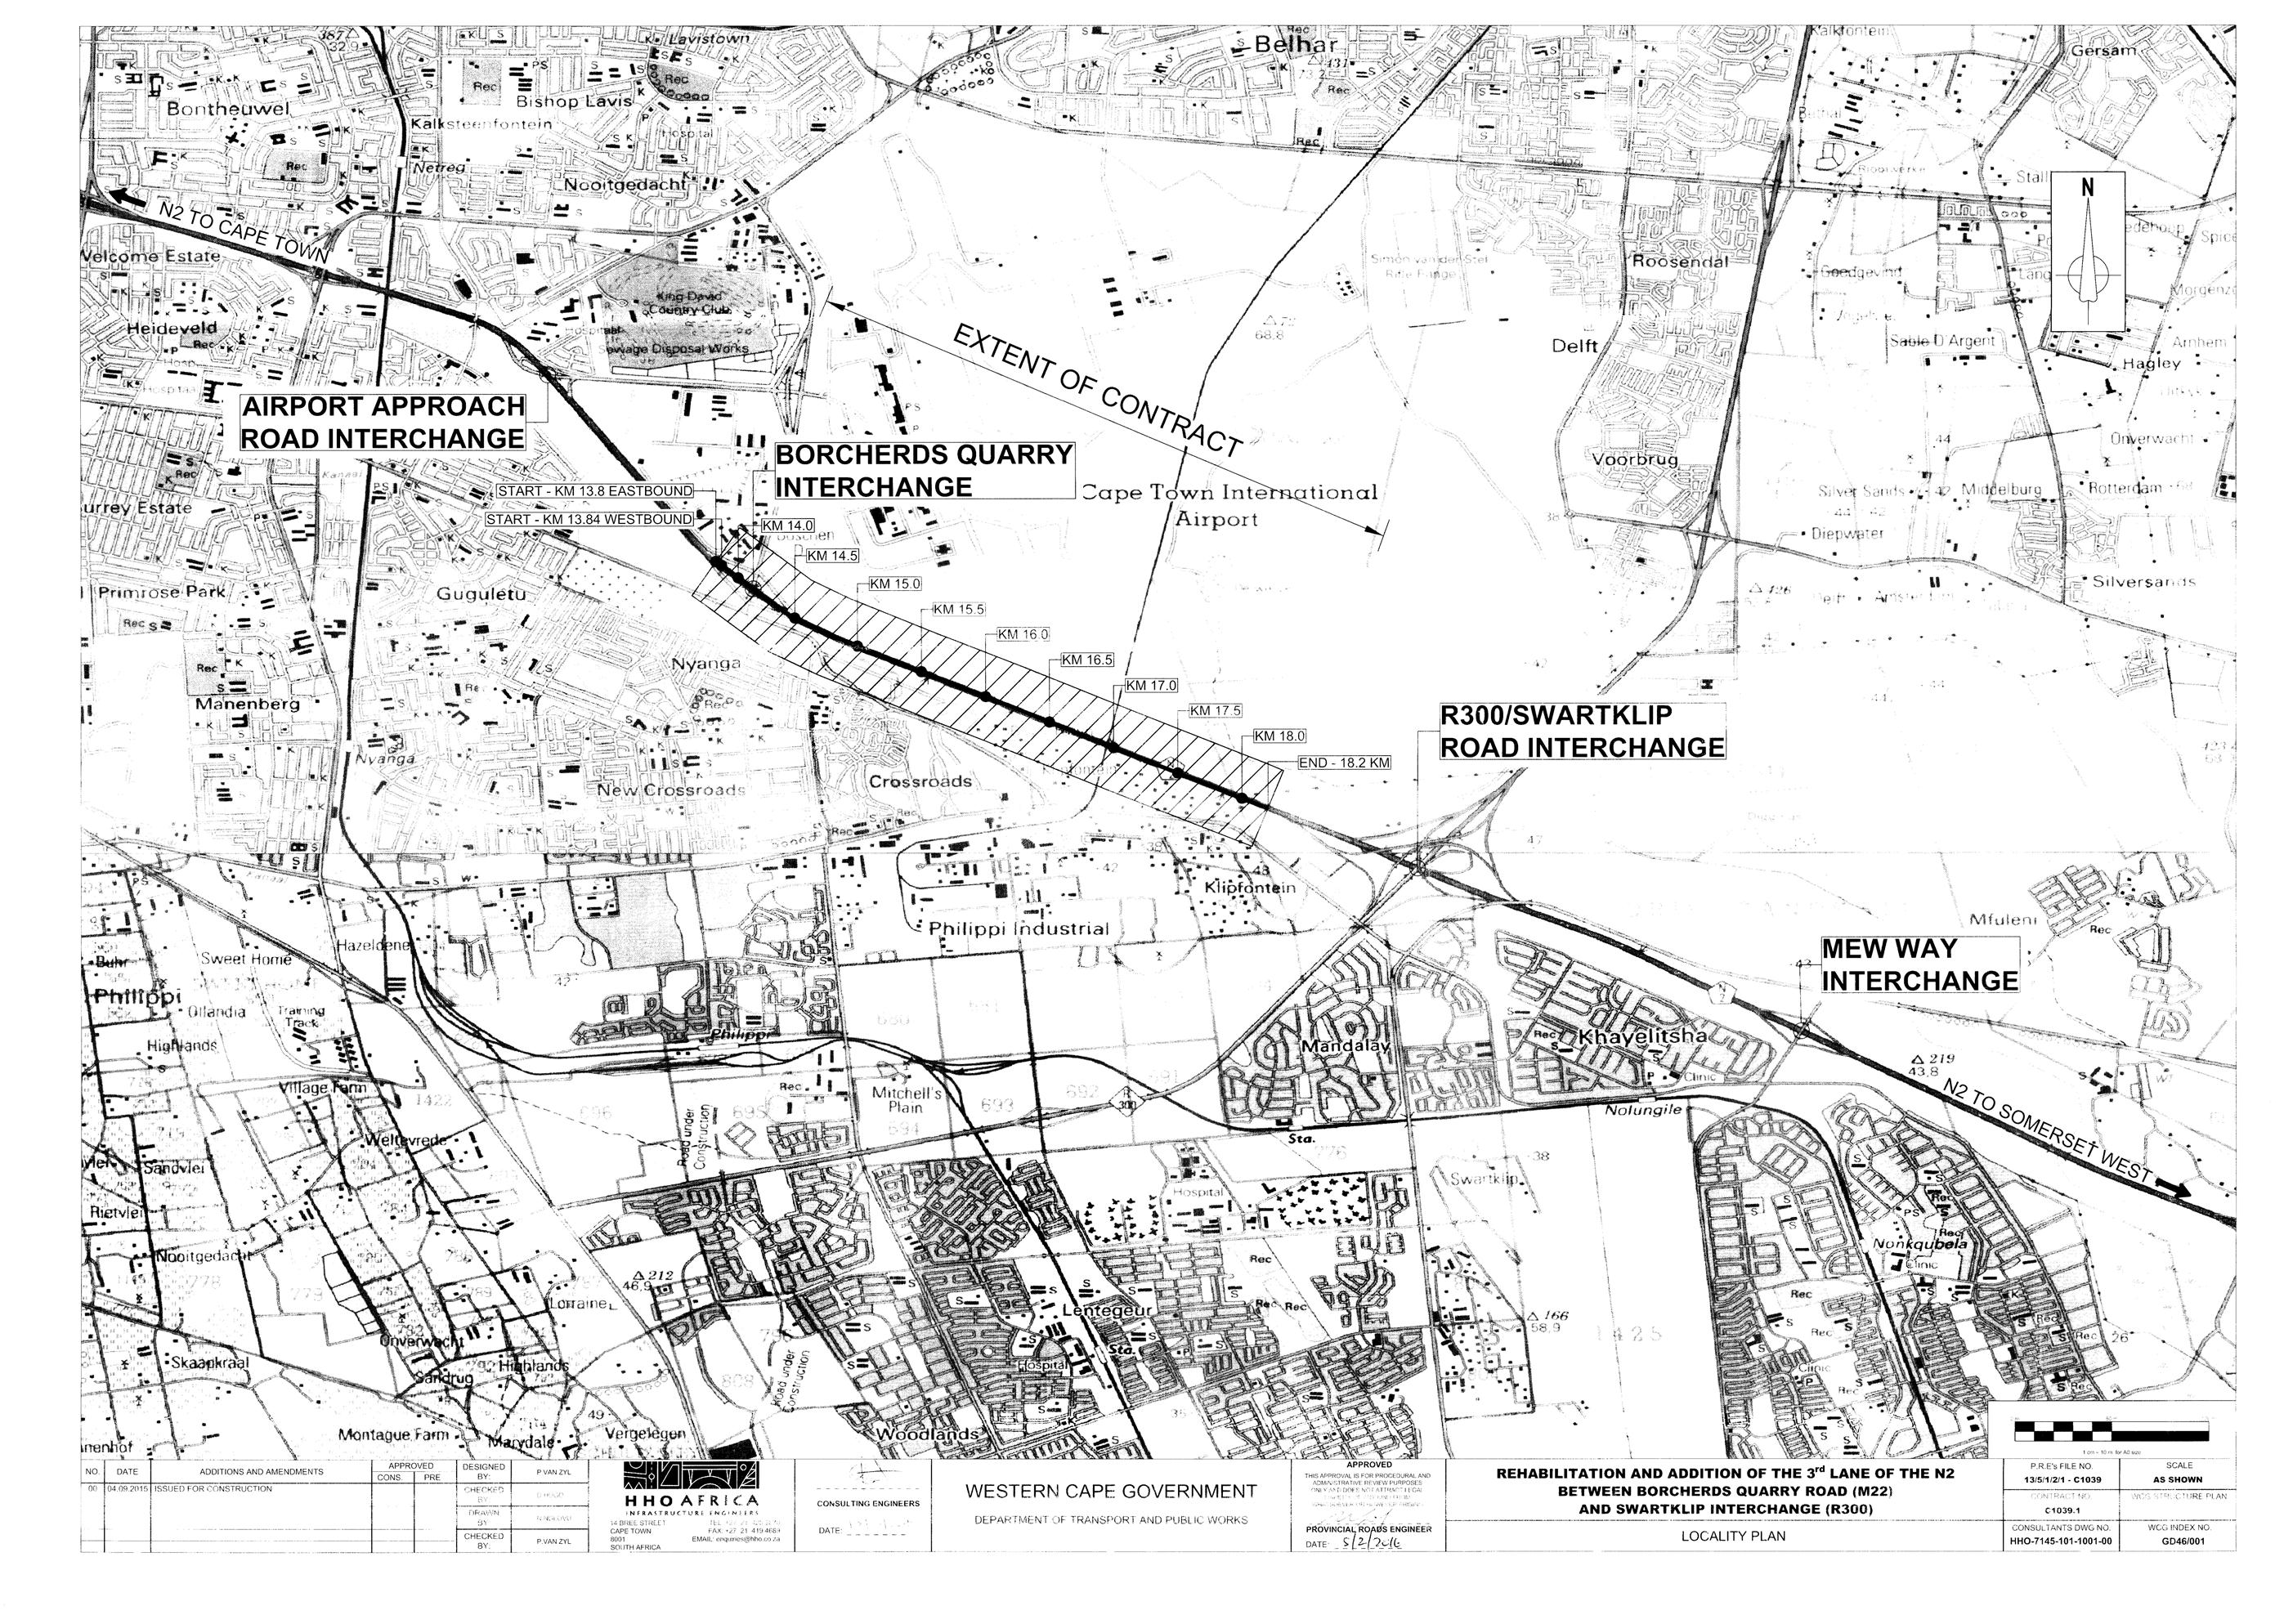 Locality plan of the N2 upgrade.